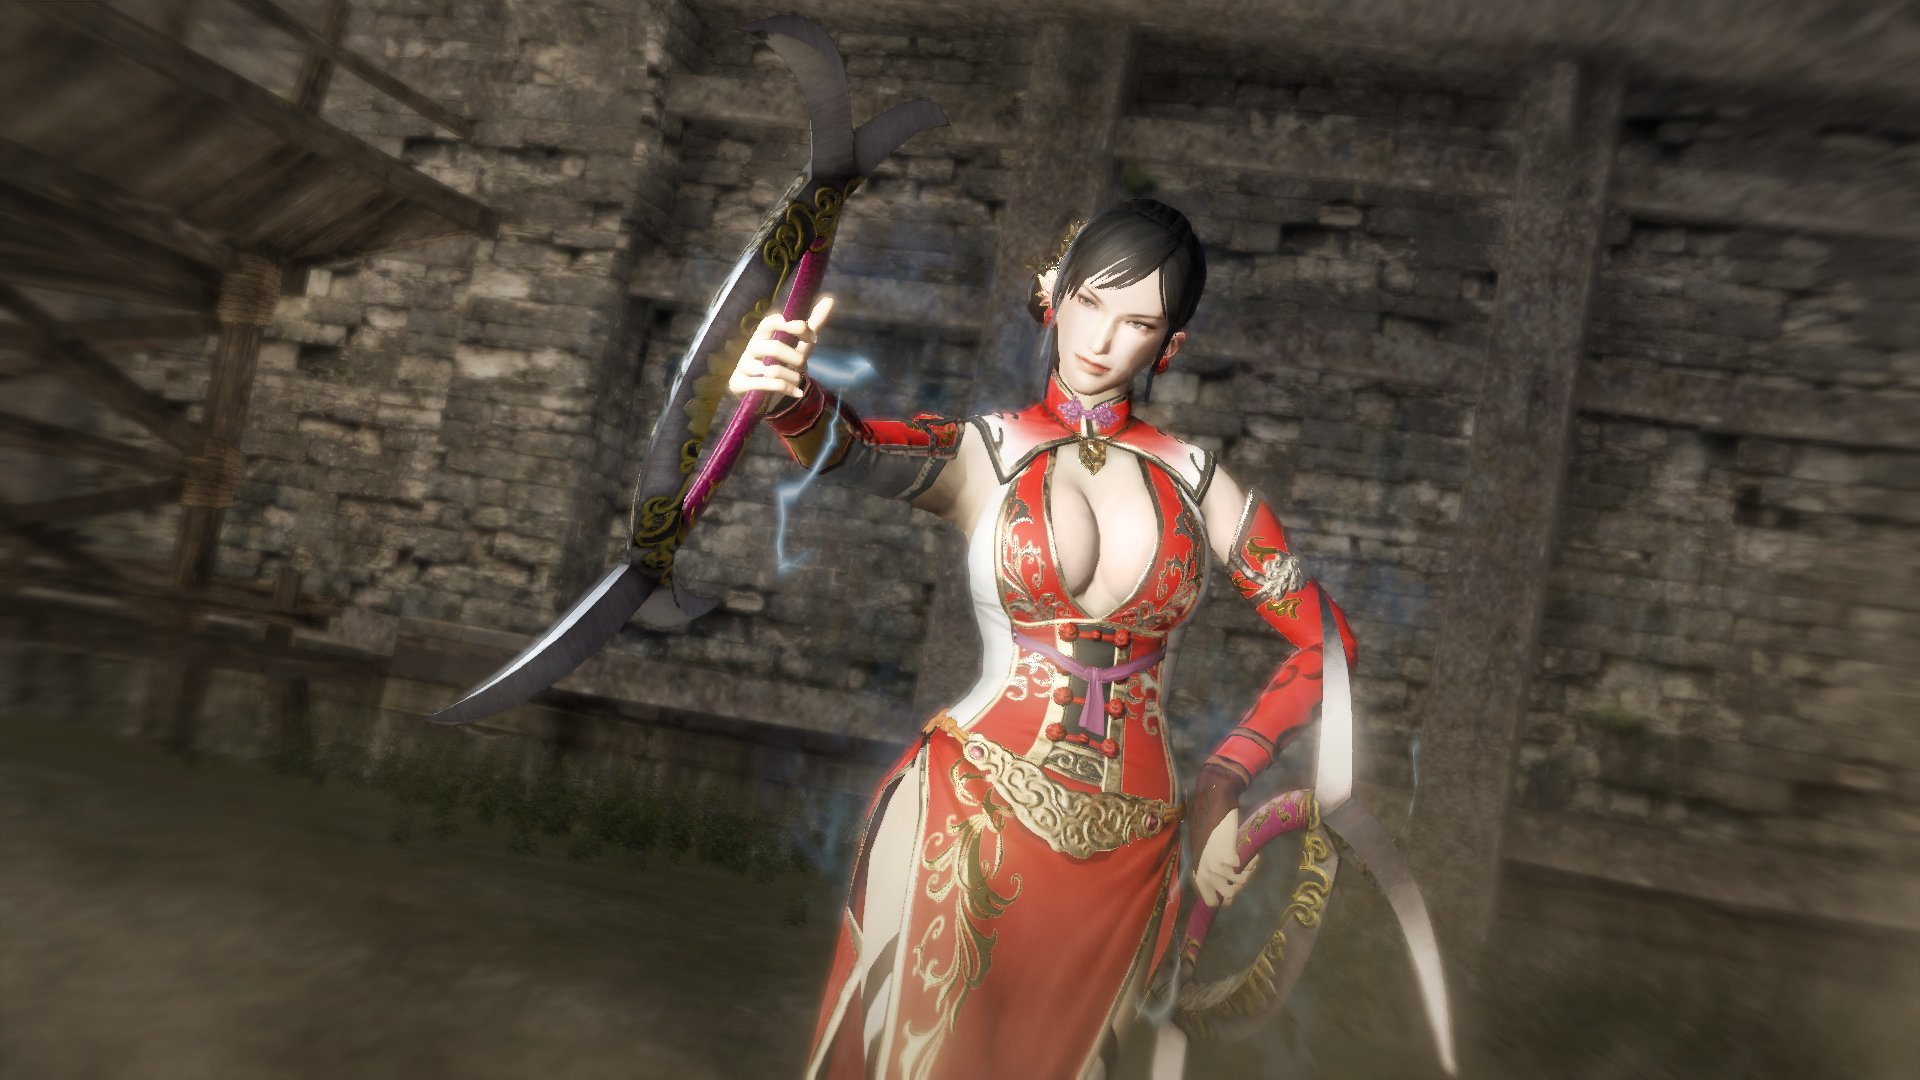 Dynasty warrior 7 naked mod exploited galleries